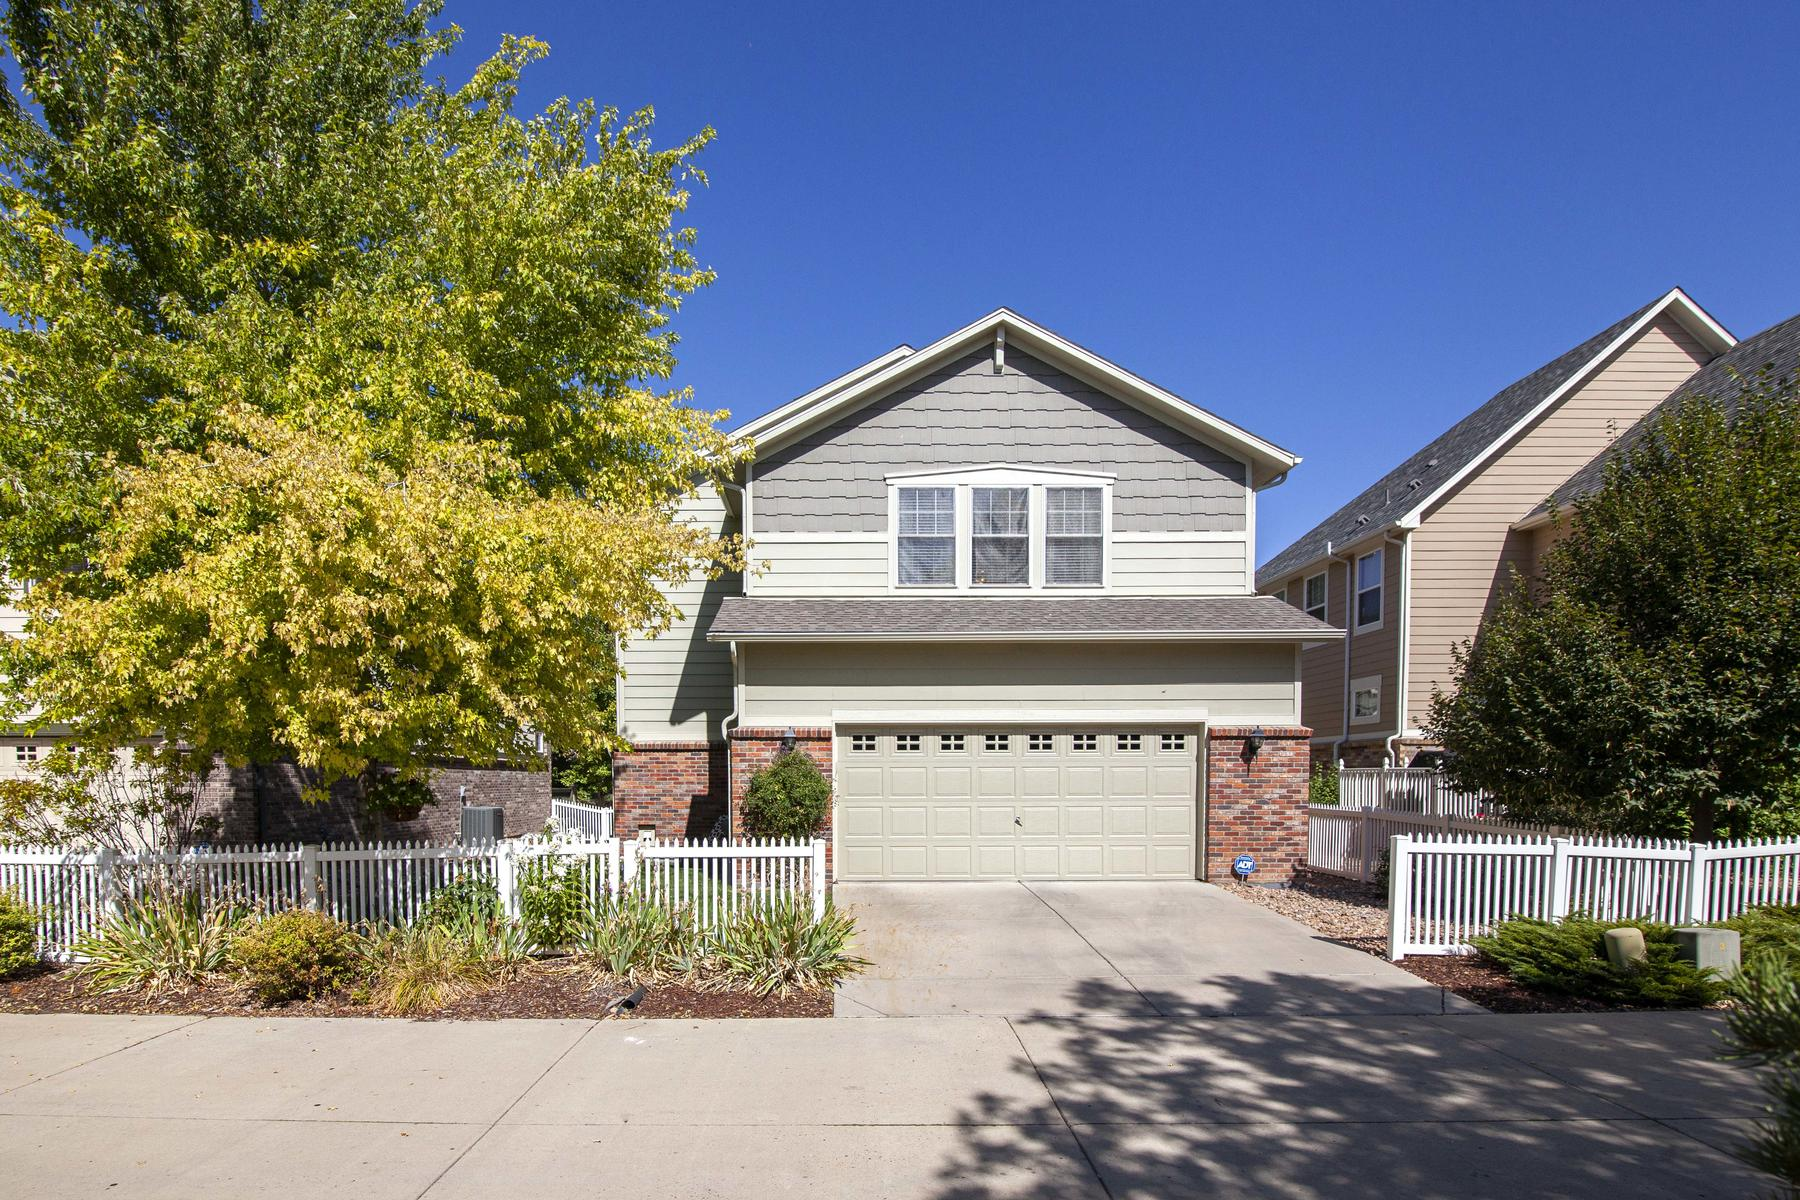 Single Family Homes for Sale at Pristine Perfection Walking Distance to The New Downtown Westminster & Parks 5886 W 94th Place Westminster, Colorado 80031 United States